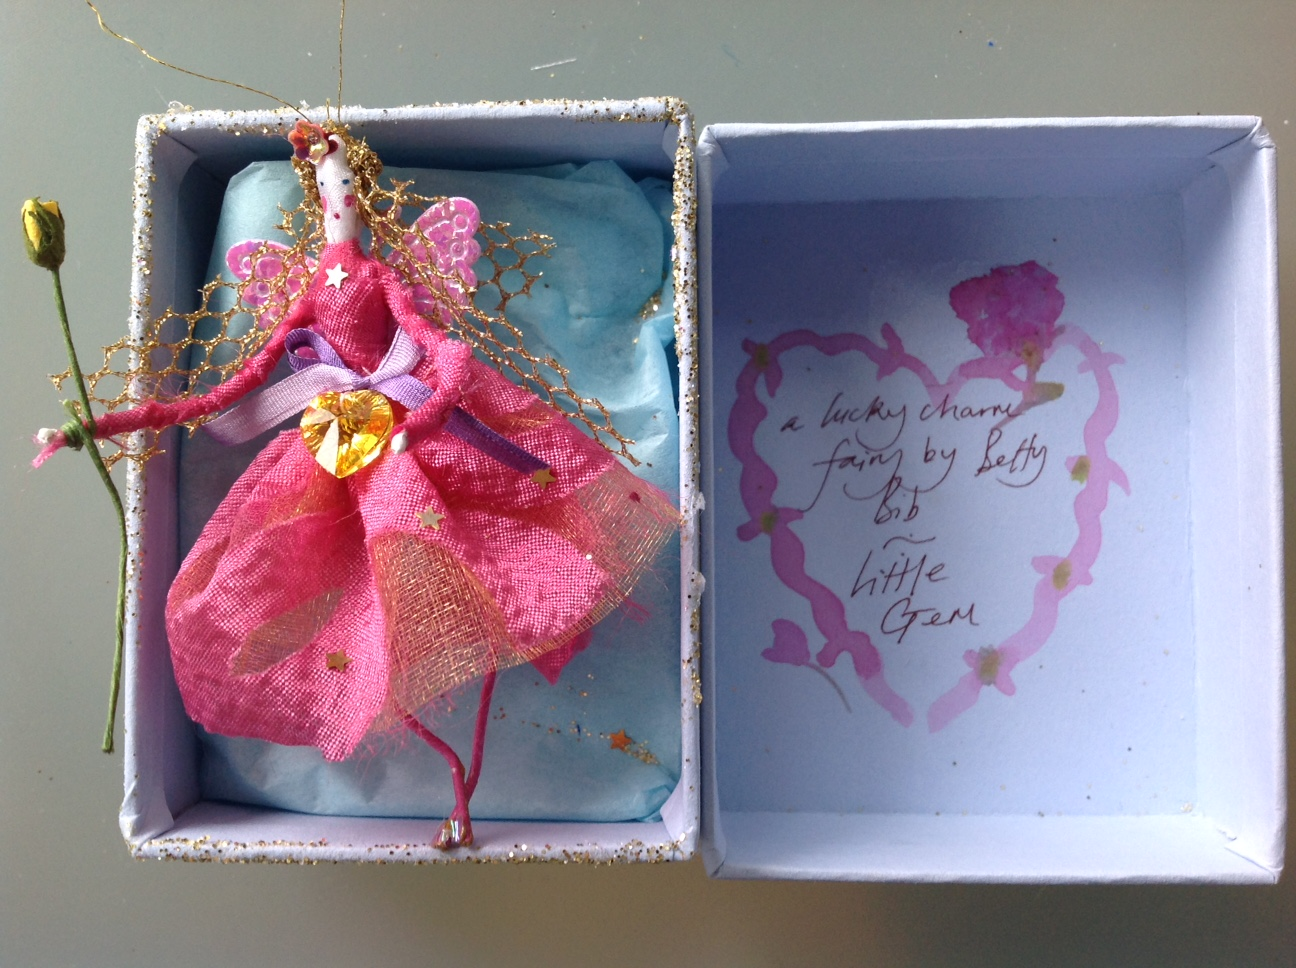 A LUCKY CHARM FAIRY A 9cm fairy in a box with a very shiny heart stone at her waist. She is holding a paper rosebud. £20 plus £3.50 p&p